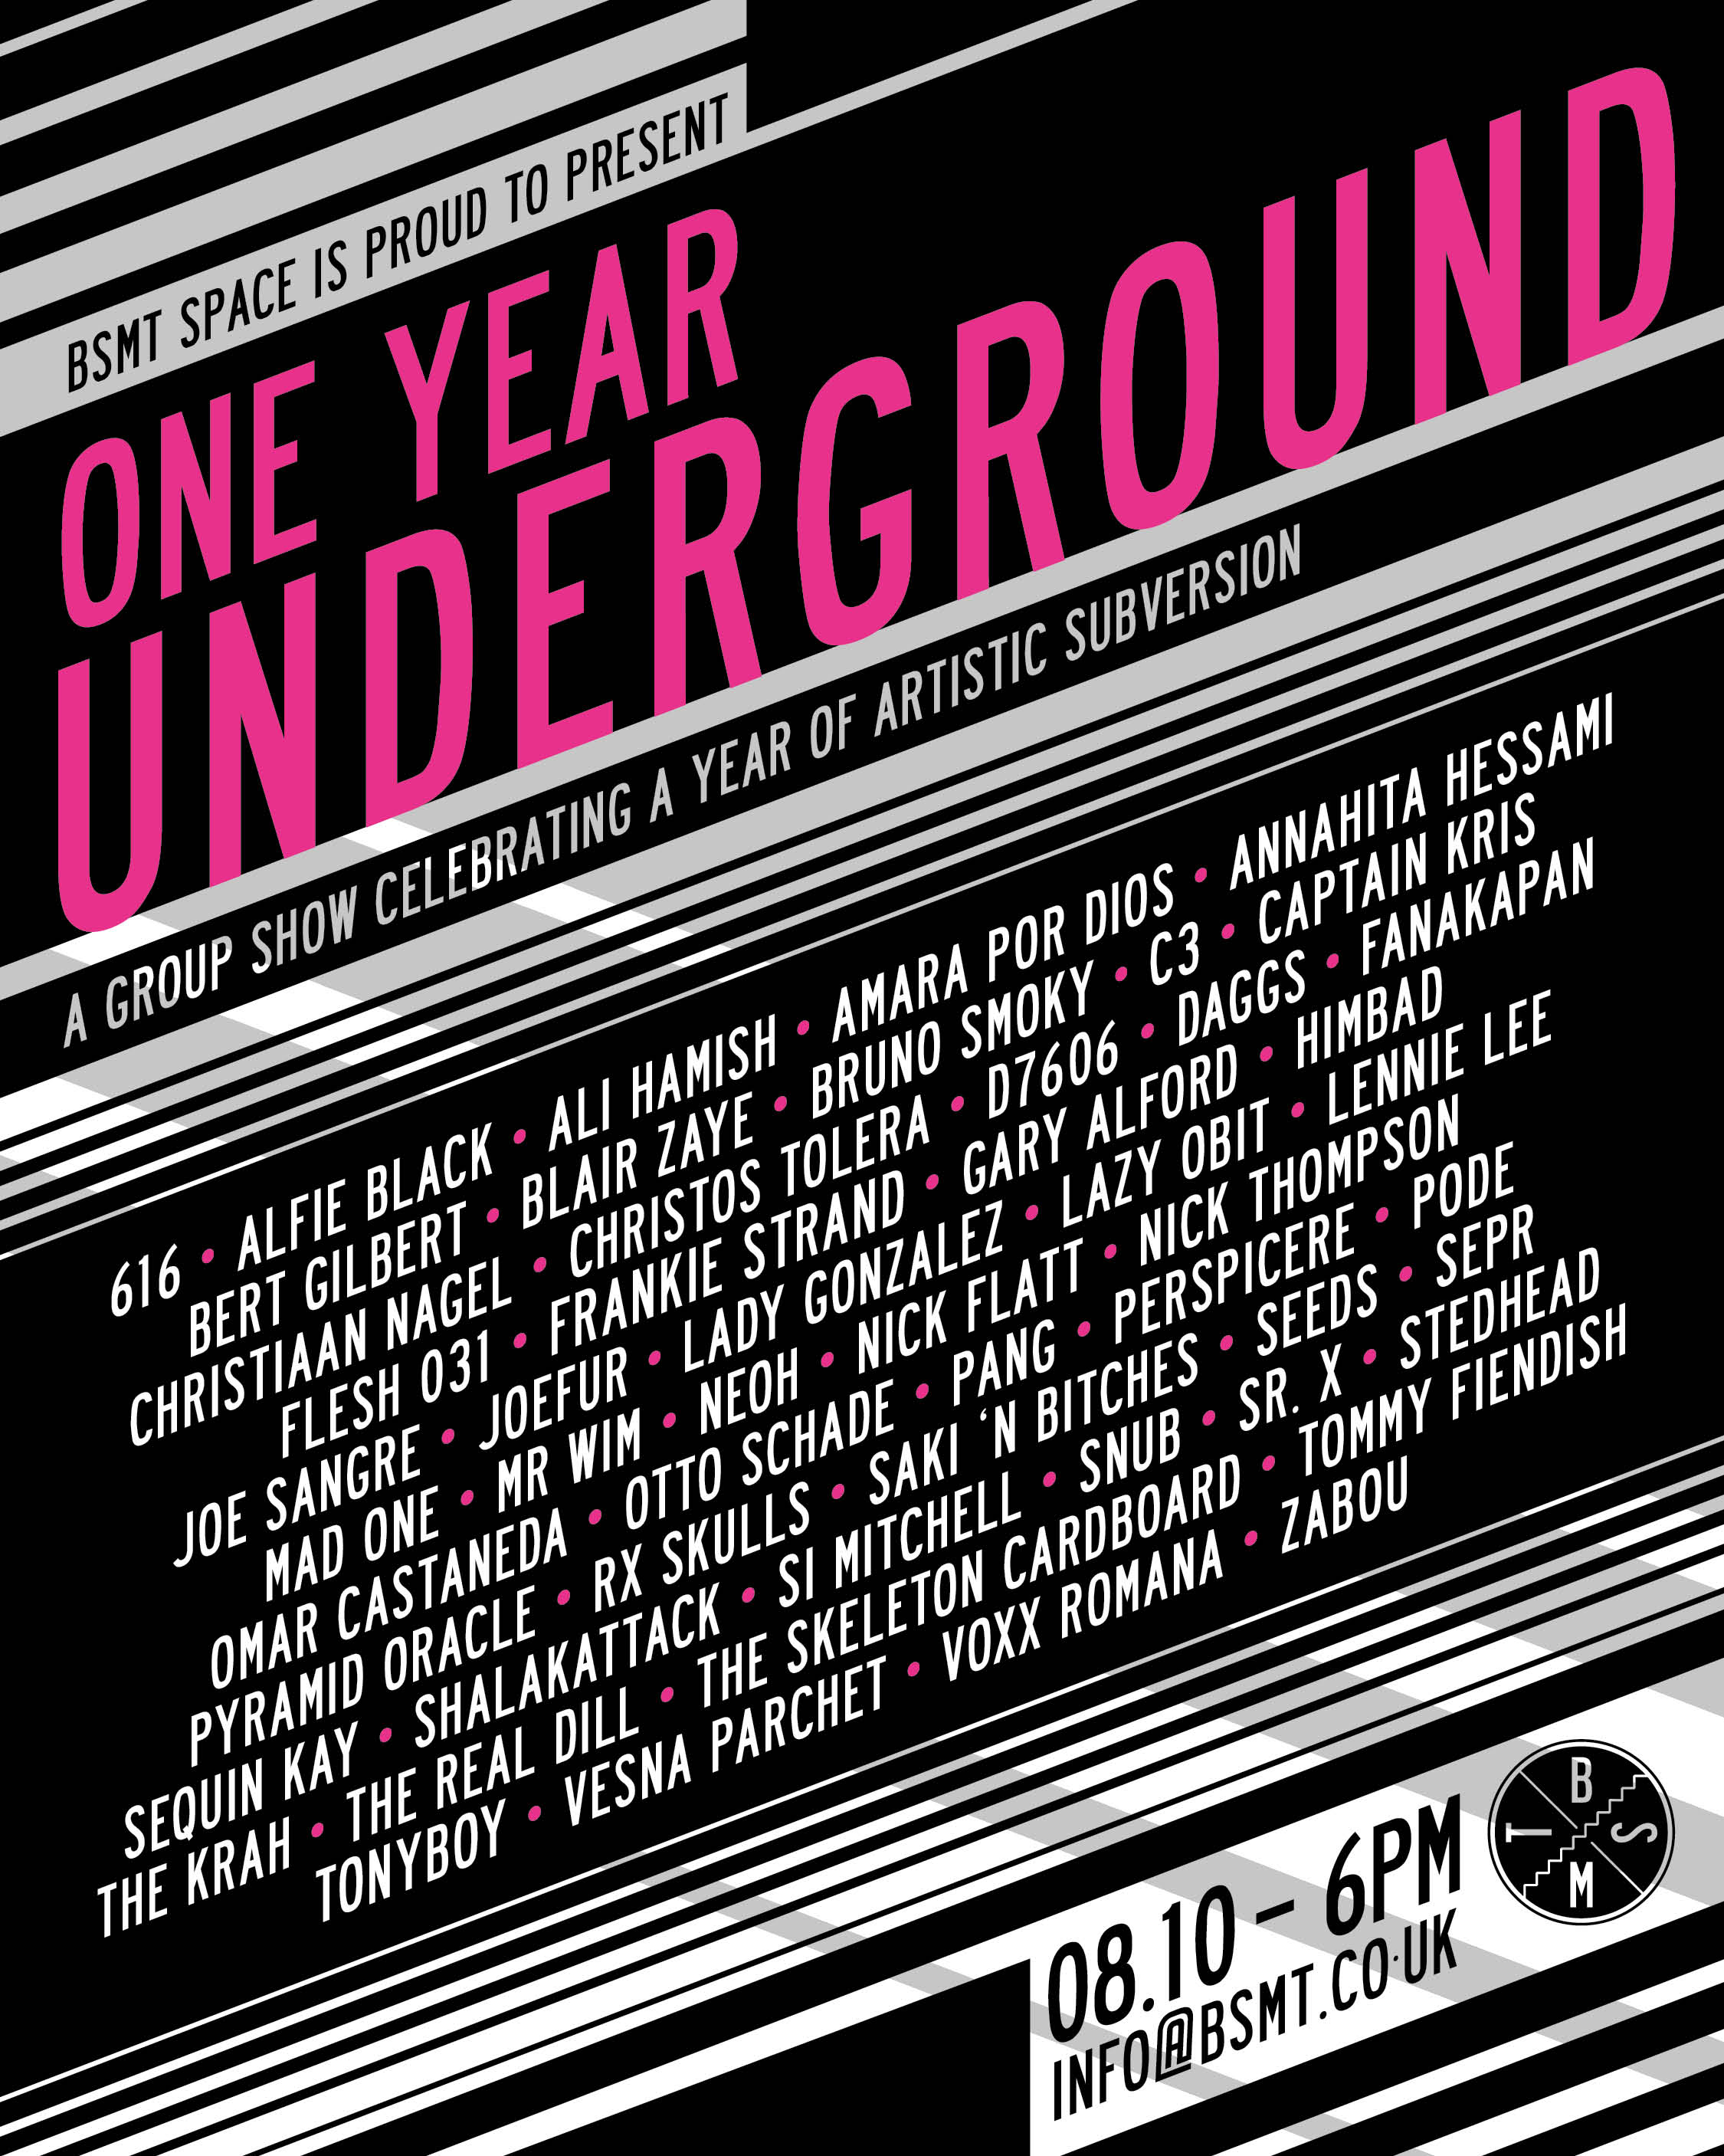 BSMT_The Real Underground_Flyer_Artist List (3).jpg